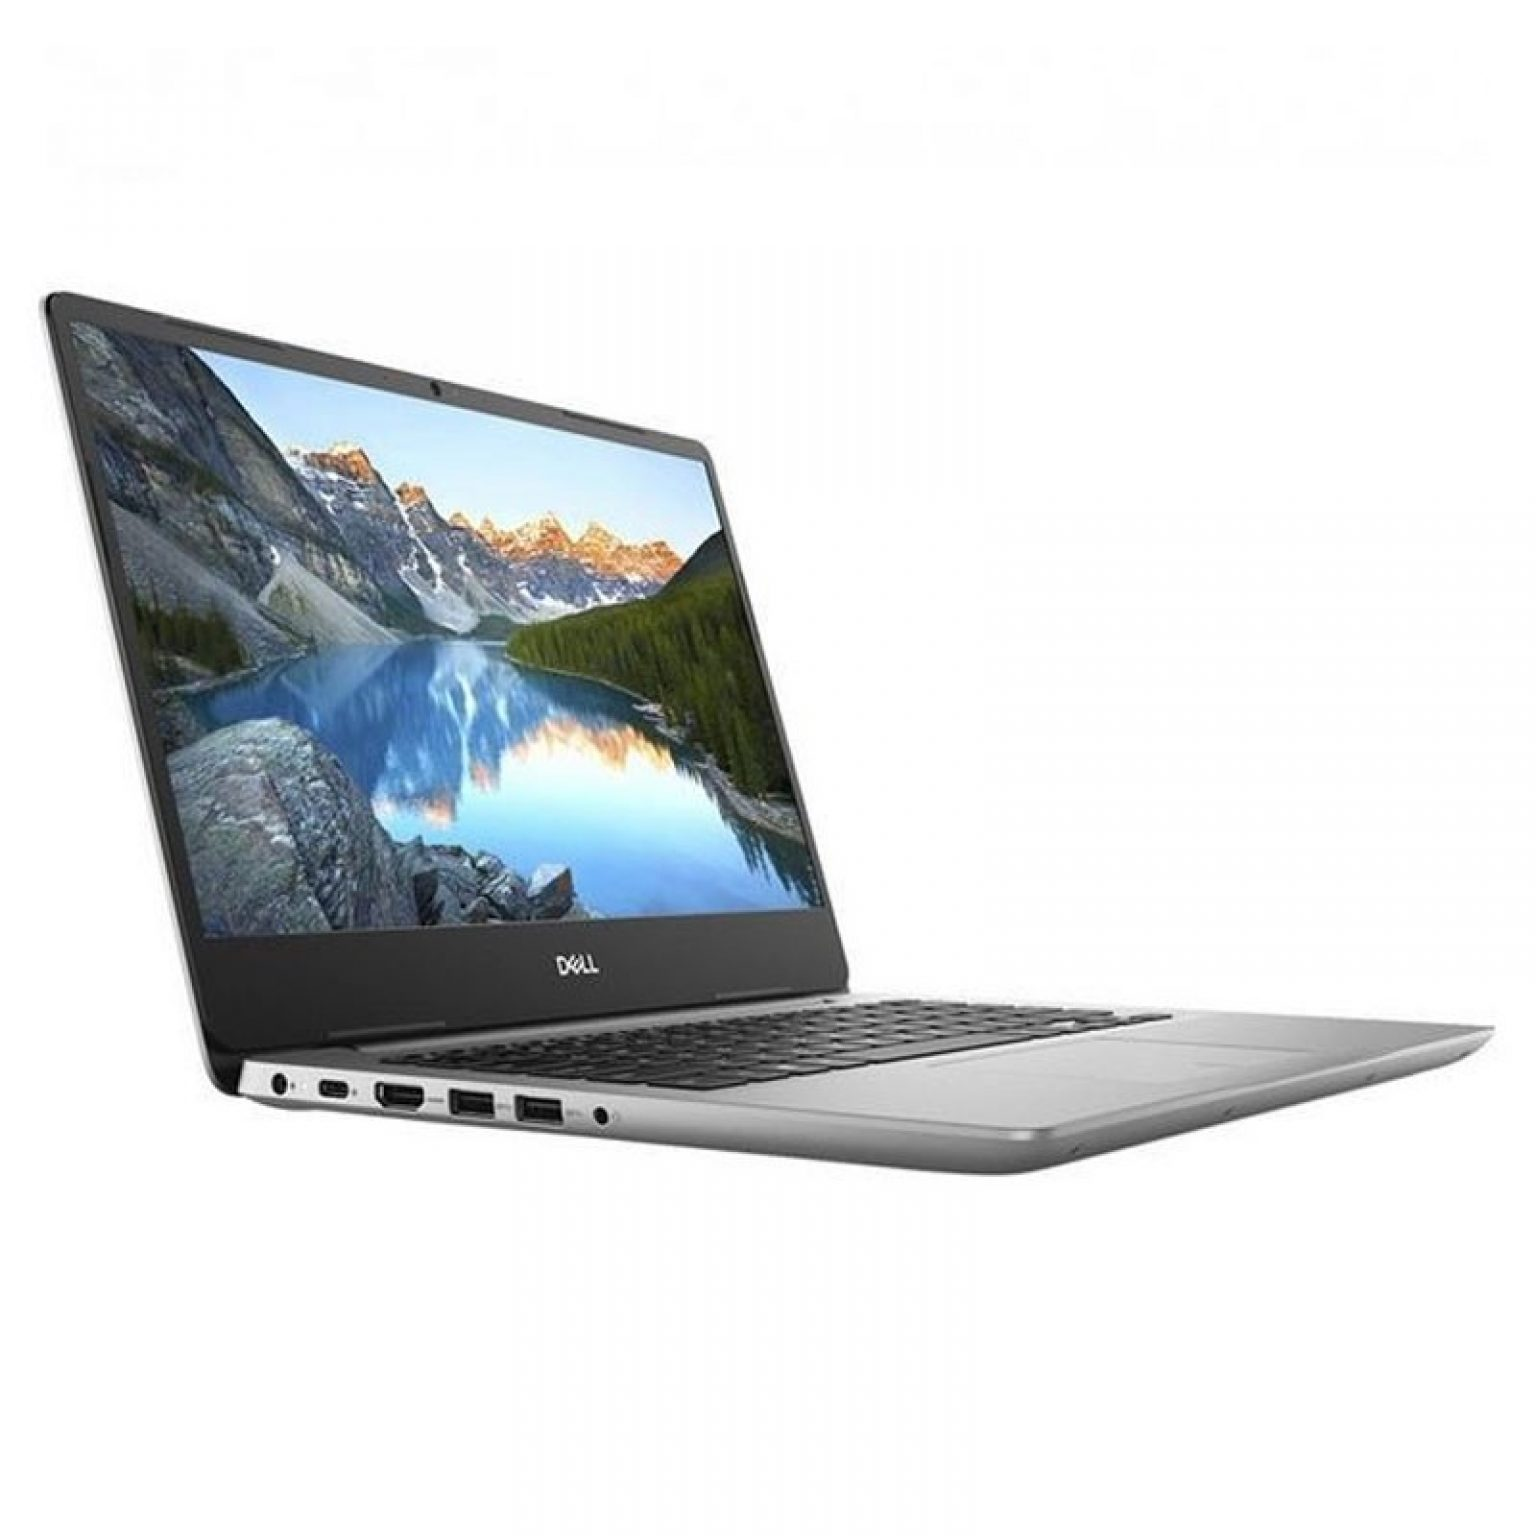 DELL - Inspiron 14-3480 (i5-8265U/4GB DDR4/1TB HDD/R520 2GB/14inch/Win10H)